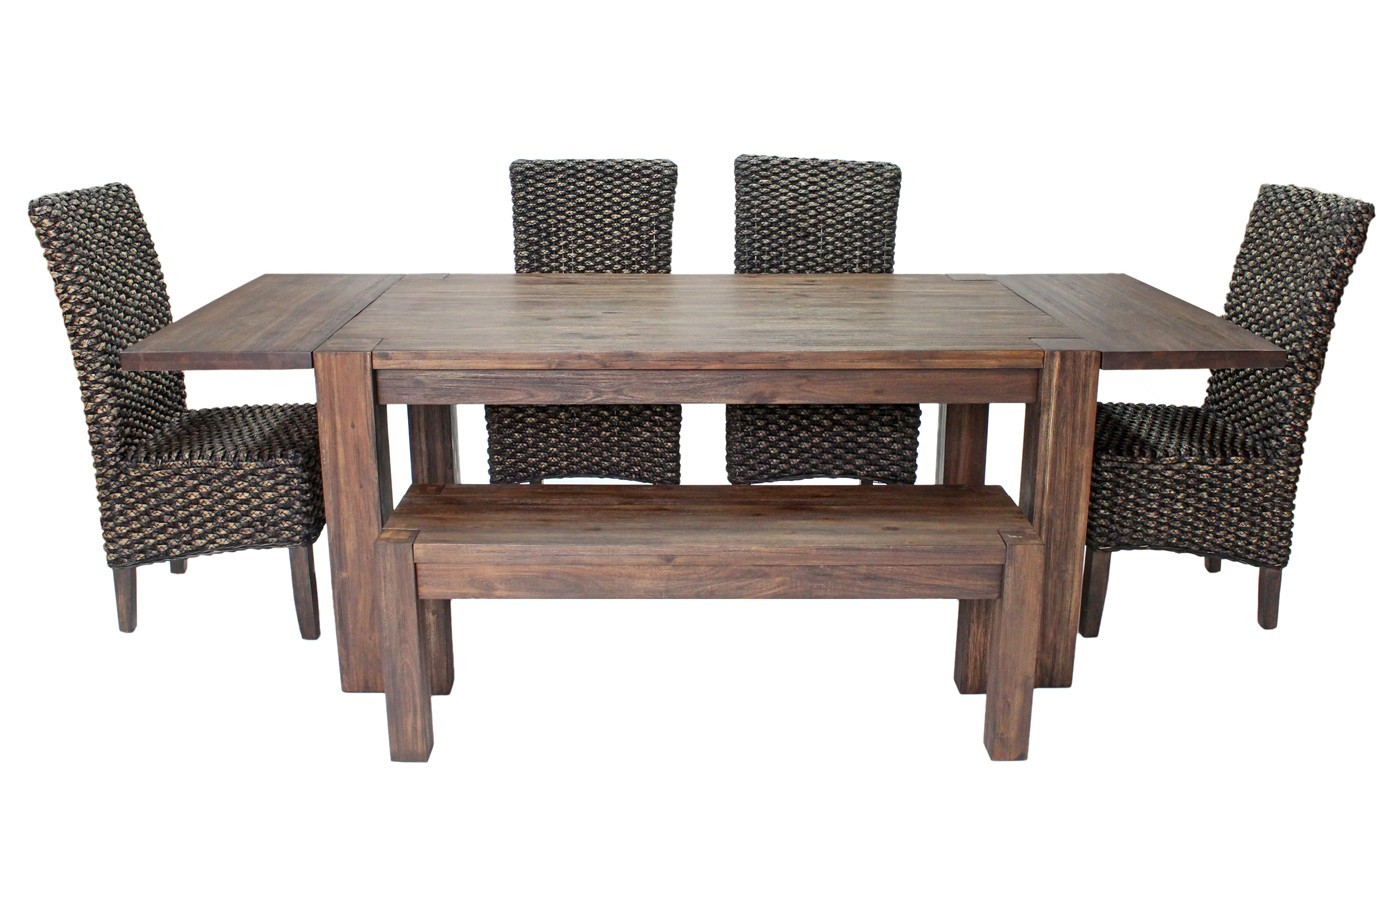 Star Furniture Dining Table: Meadow Dining Table